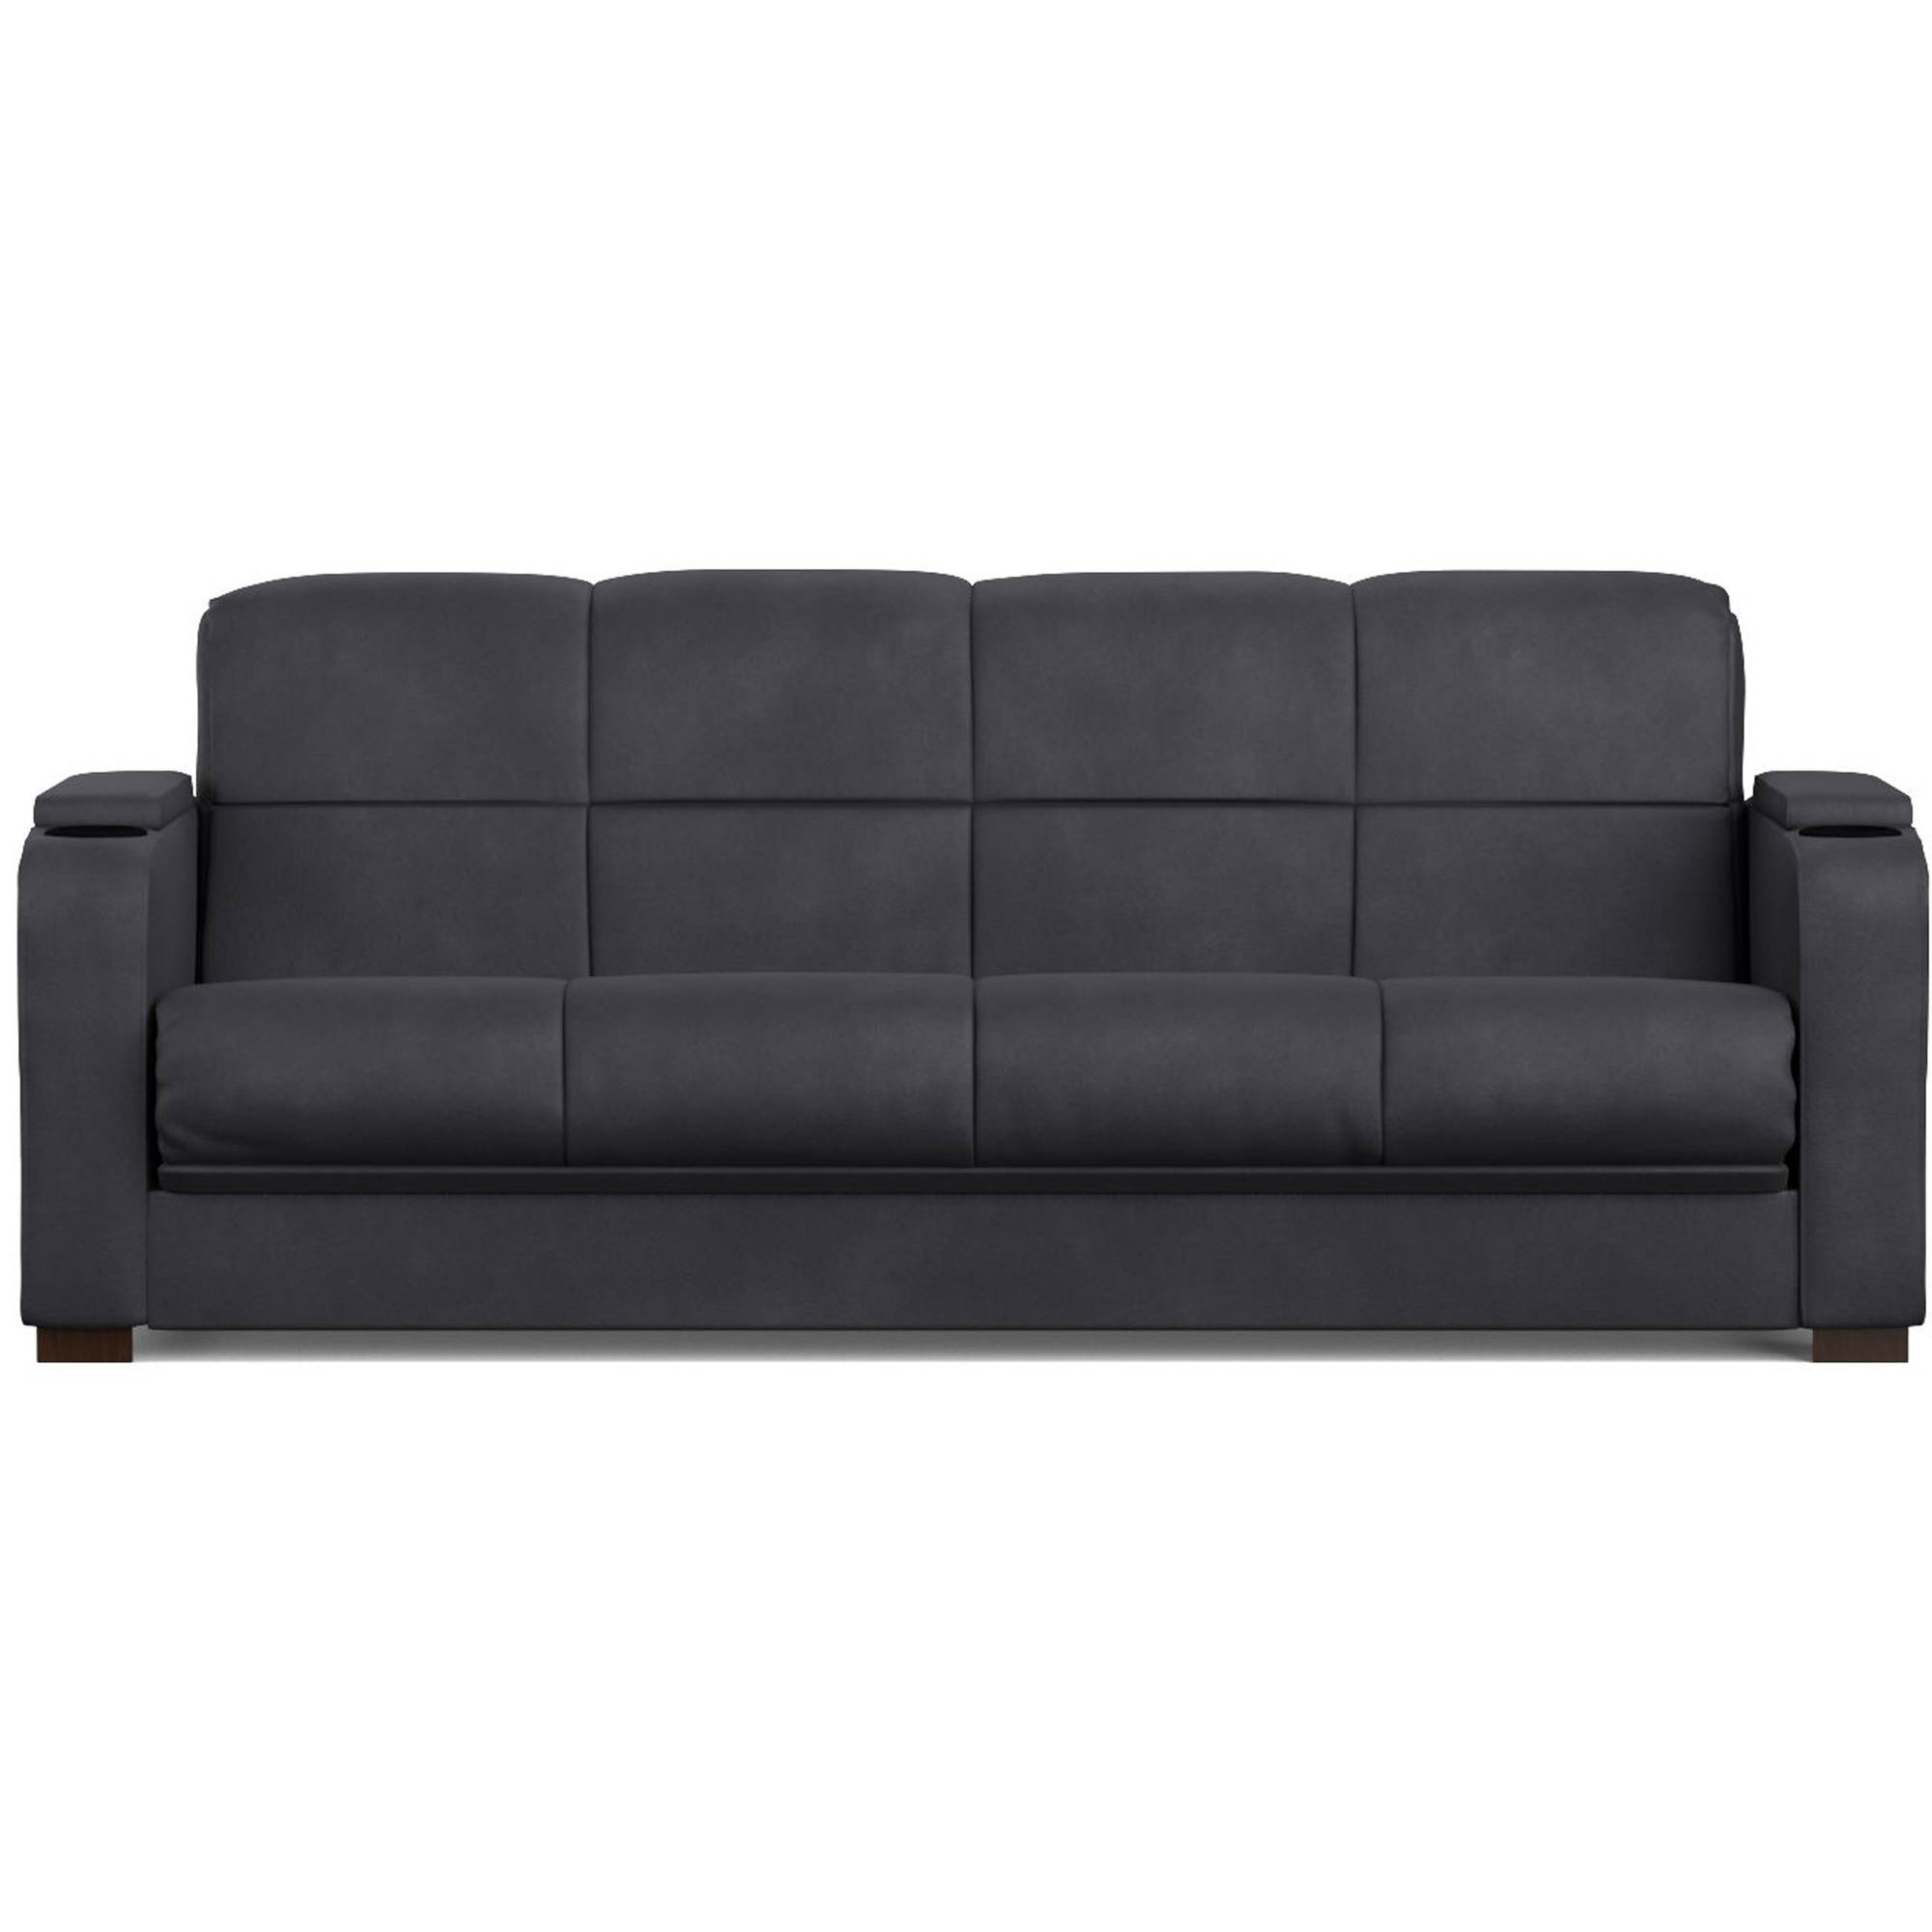 Mainstays Tyler Futon with Storage Sofa Sleeper Bed Multiple